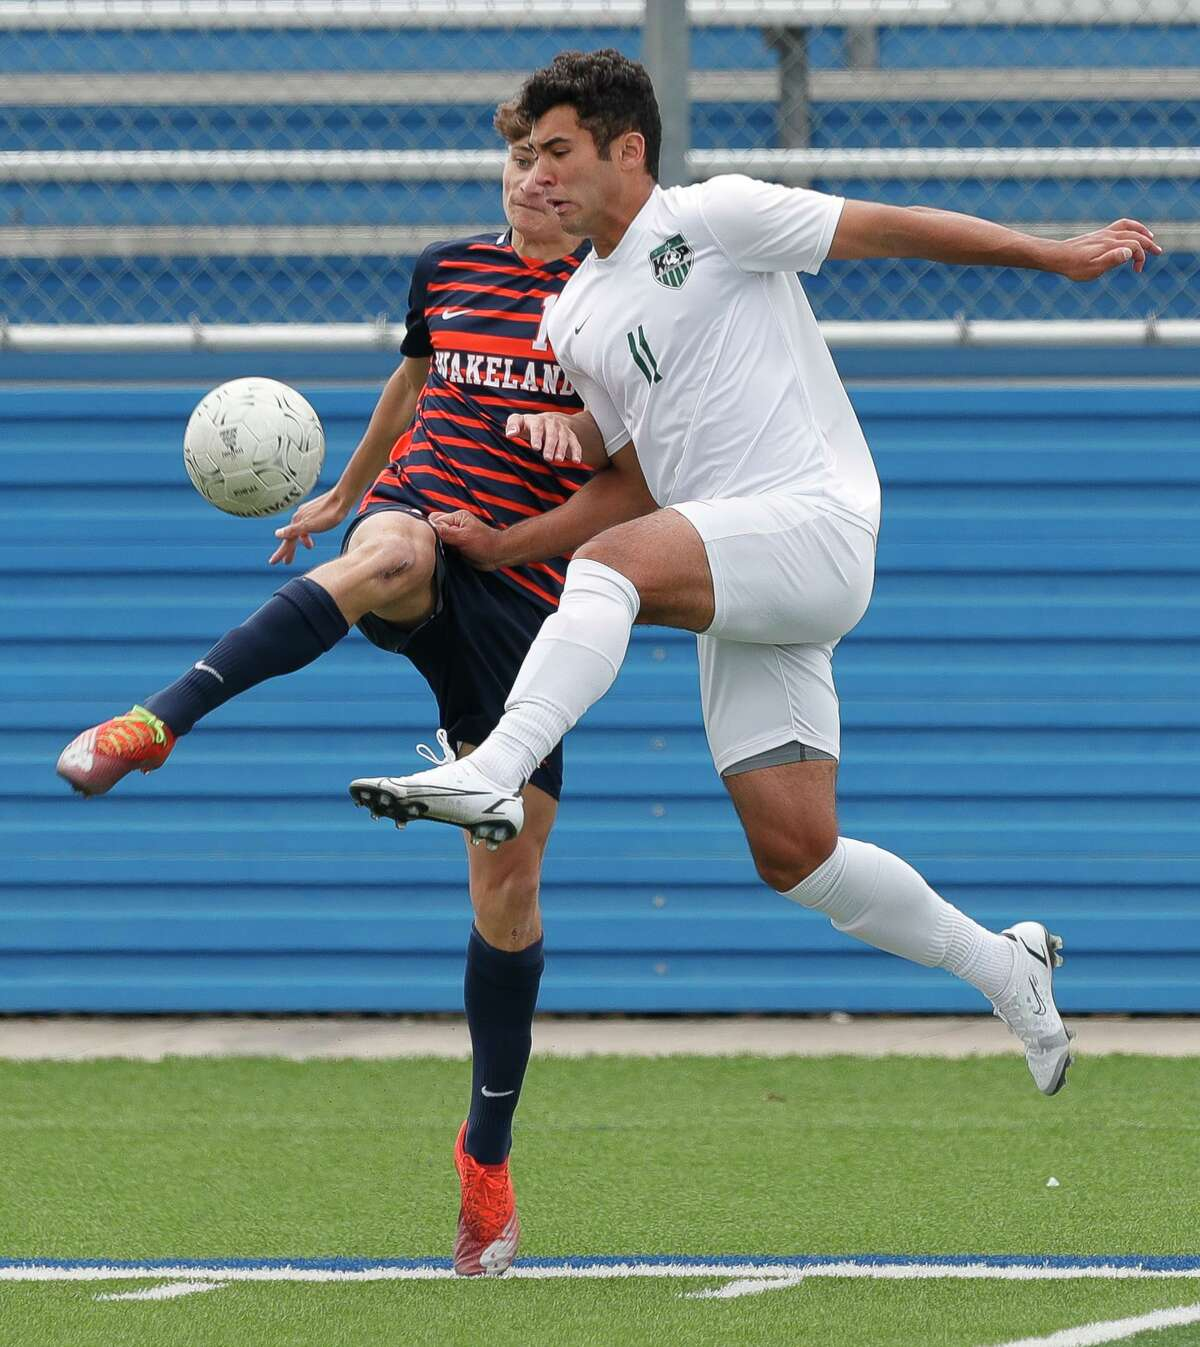 Kingwood Park forward Andrew Guerra (11) battles for the ball in the air against Frisco Wakeland midfielder Antony Quezada (14) in the first period of the UIL Class 5A boys soccer championship, Saturday, April 17, 2021, in Georgetown.